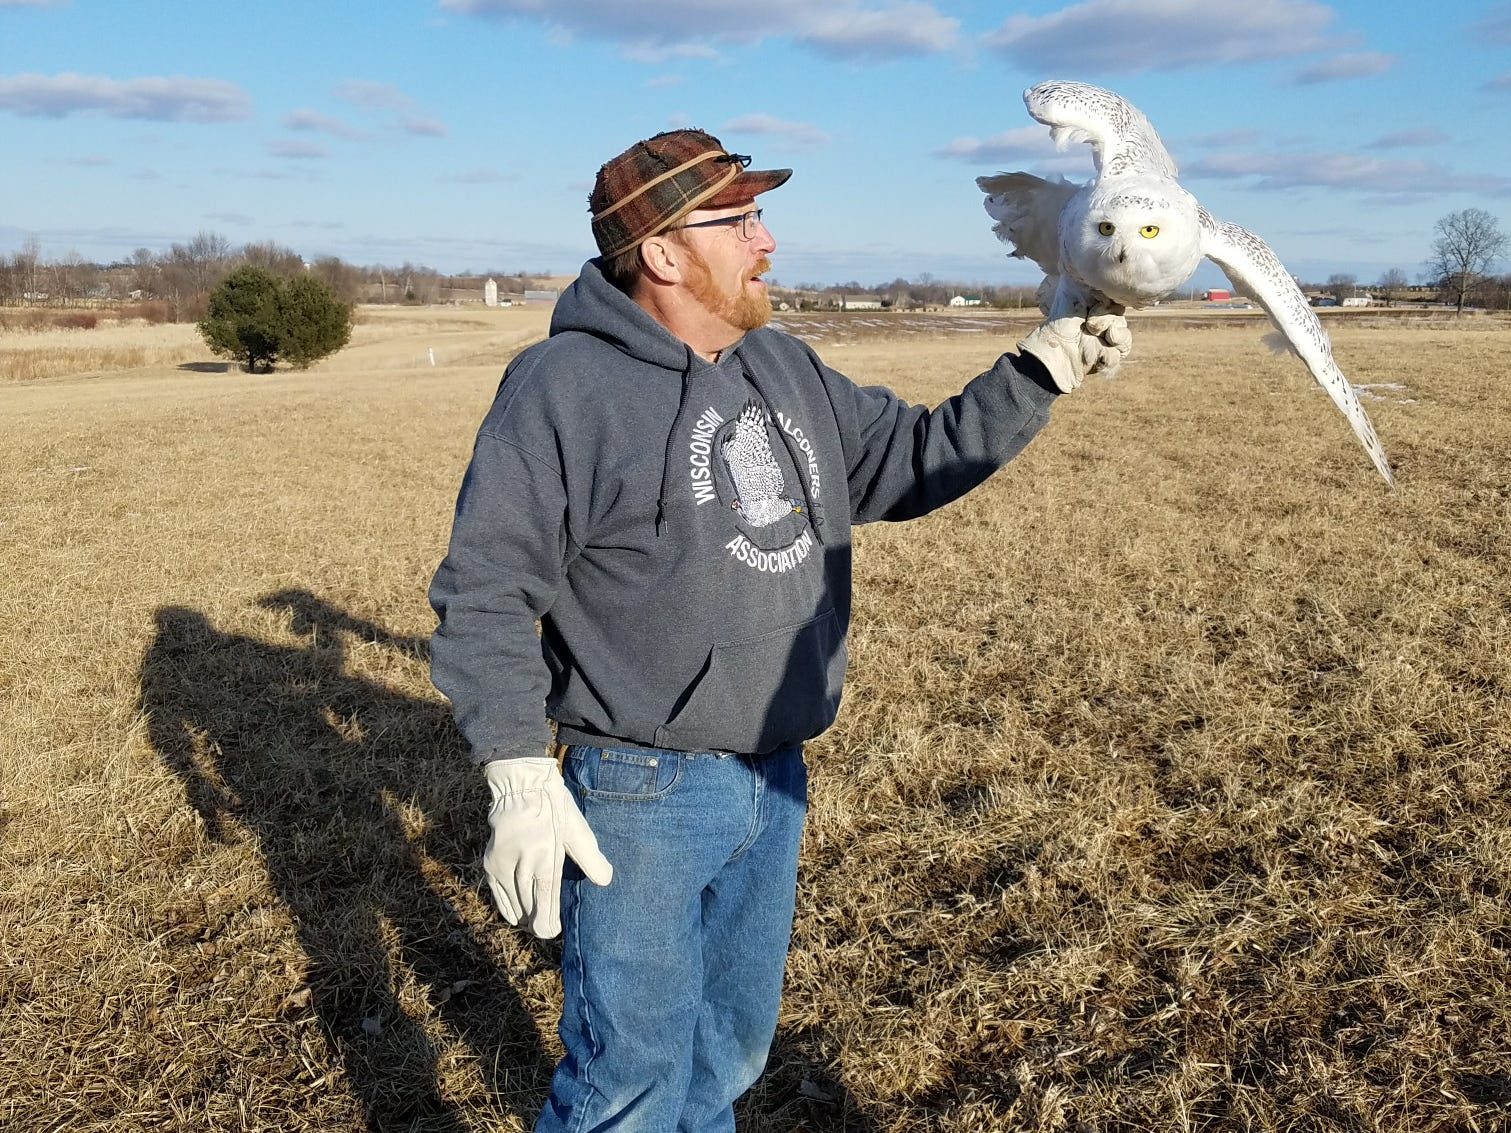 Frank Ujazdowski of the Fox Cities with a snowy owl he captured March 2018 at Wittman Regional Airport in Oshkosh. Ujazdowski is a volunteer falconer and a cofounder of Project SOAR, which works to rescue snowy owls from becoming hazards at airports.